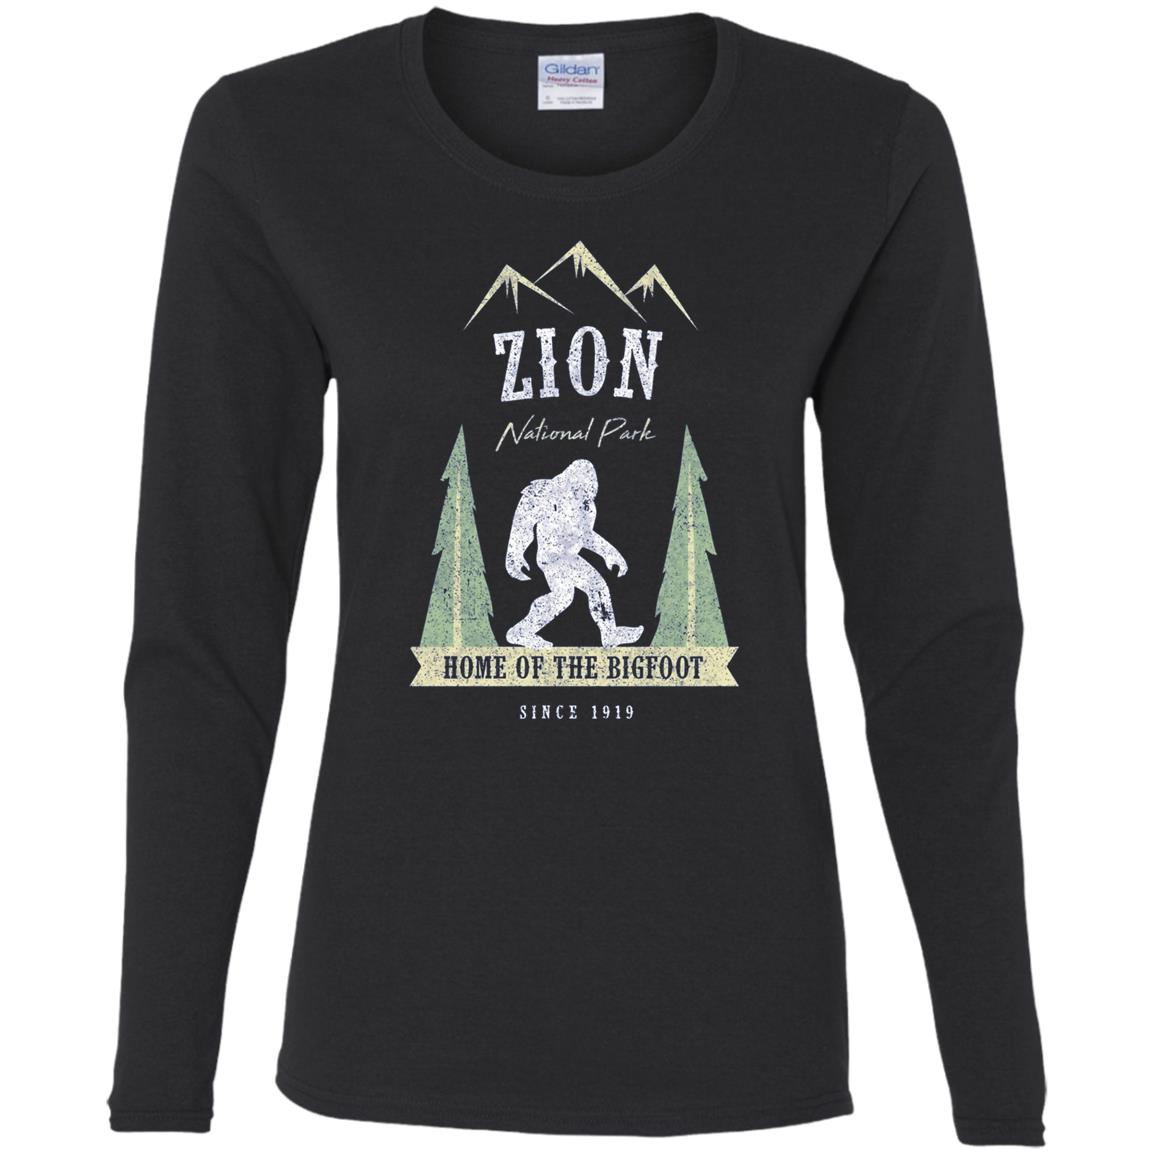 Zion National Park Vintage Bigfoot Utah Gift Women Long Sleeve T-Shirt